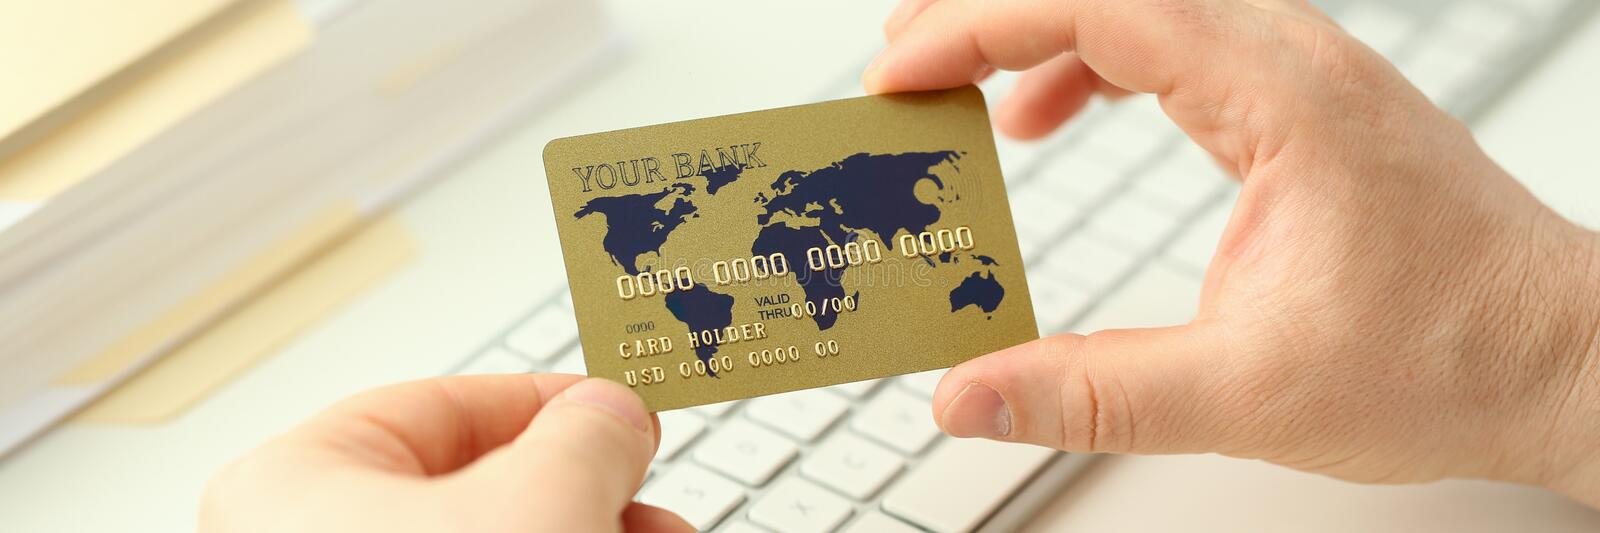 Male hand hold plastic bank card aganist royalty free stock photography